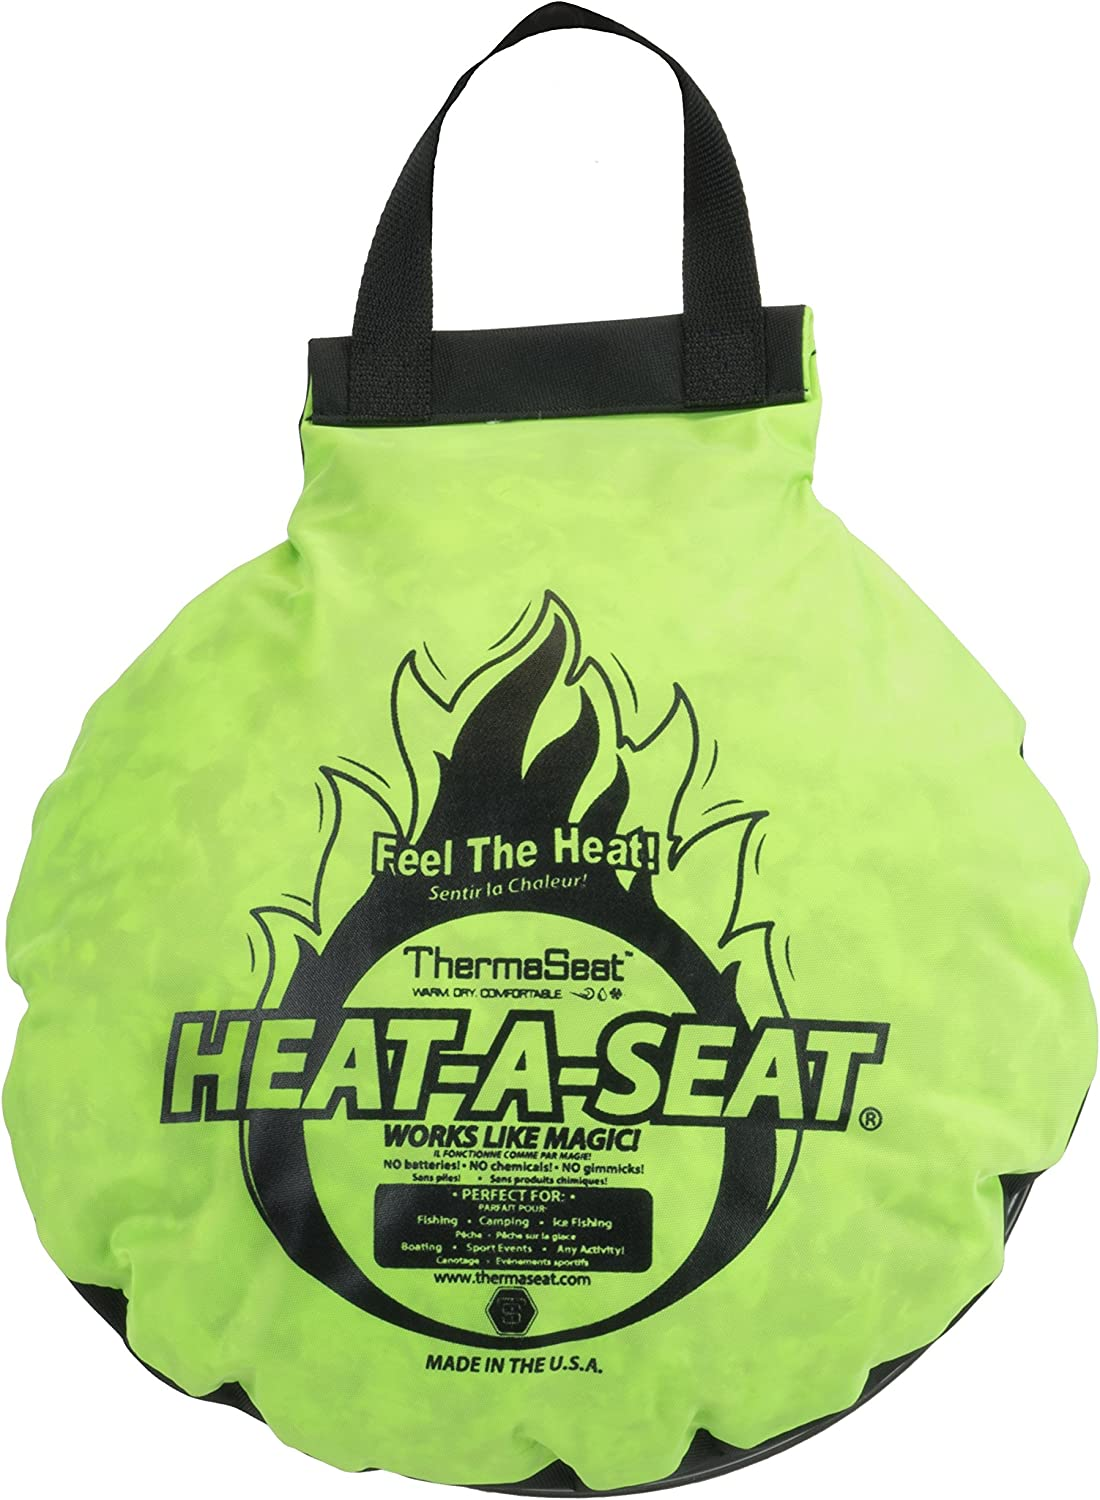 Details about  /ThermaSeat Stay Outdoors Infusion Bucket  Lid Spin Seat Flat Top Waterproof